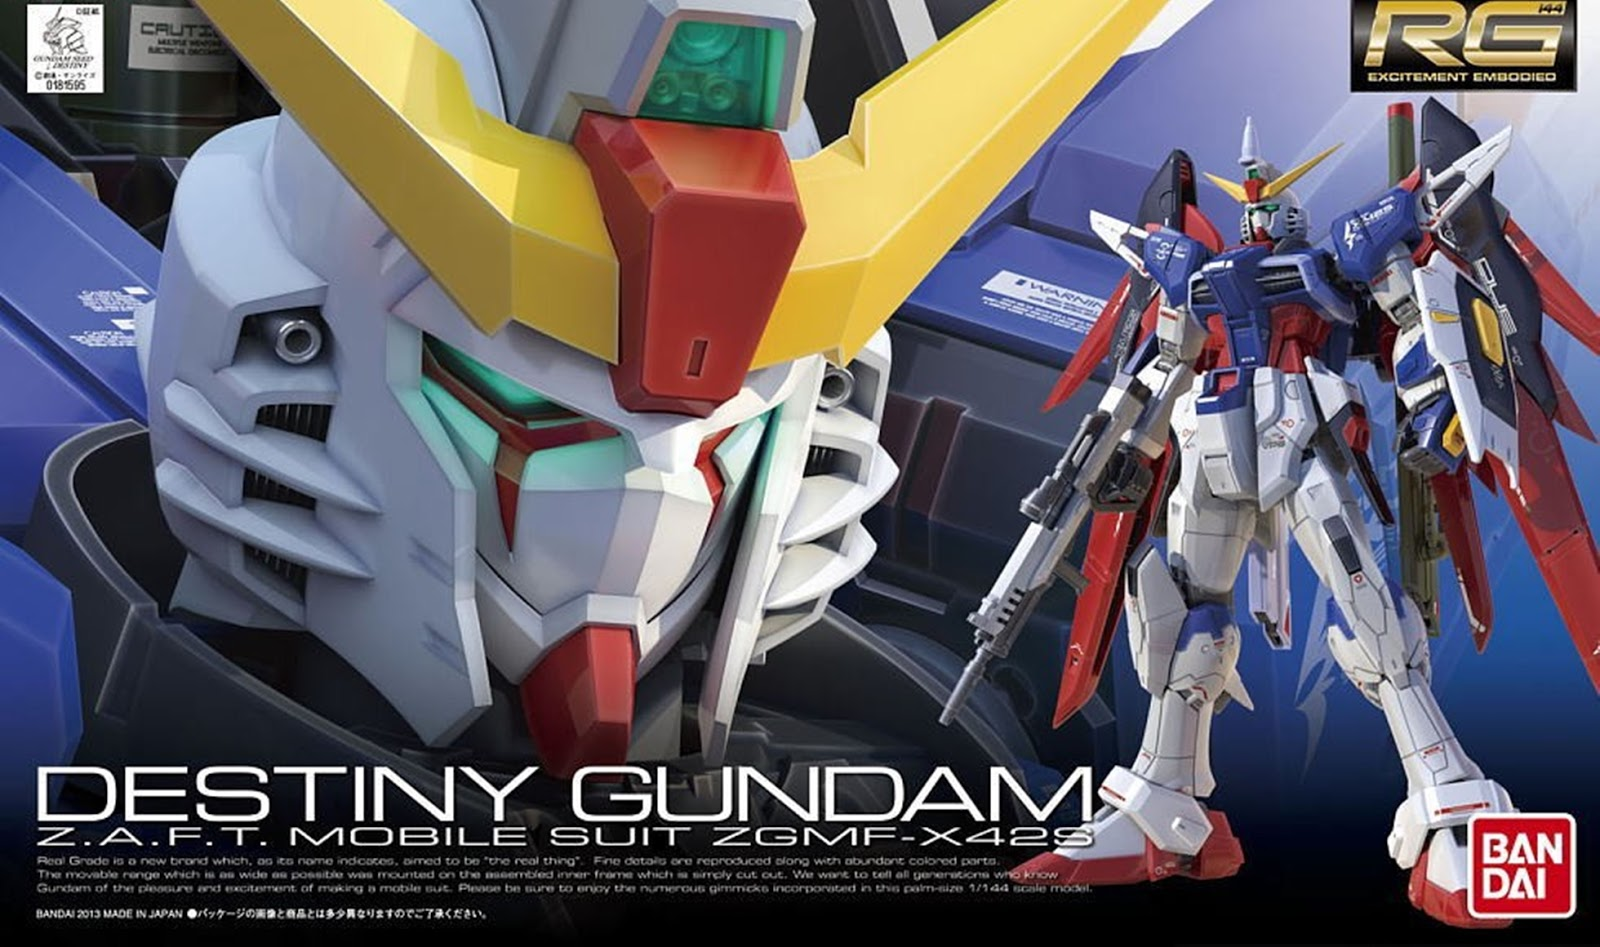 destiny gundam rg - photo #16